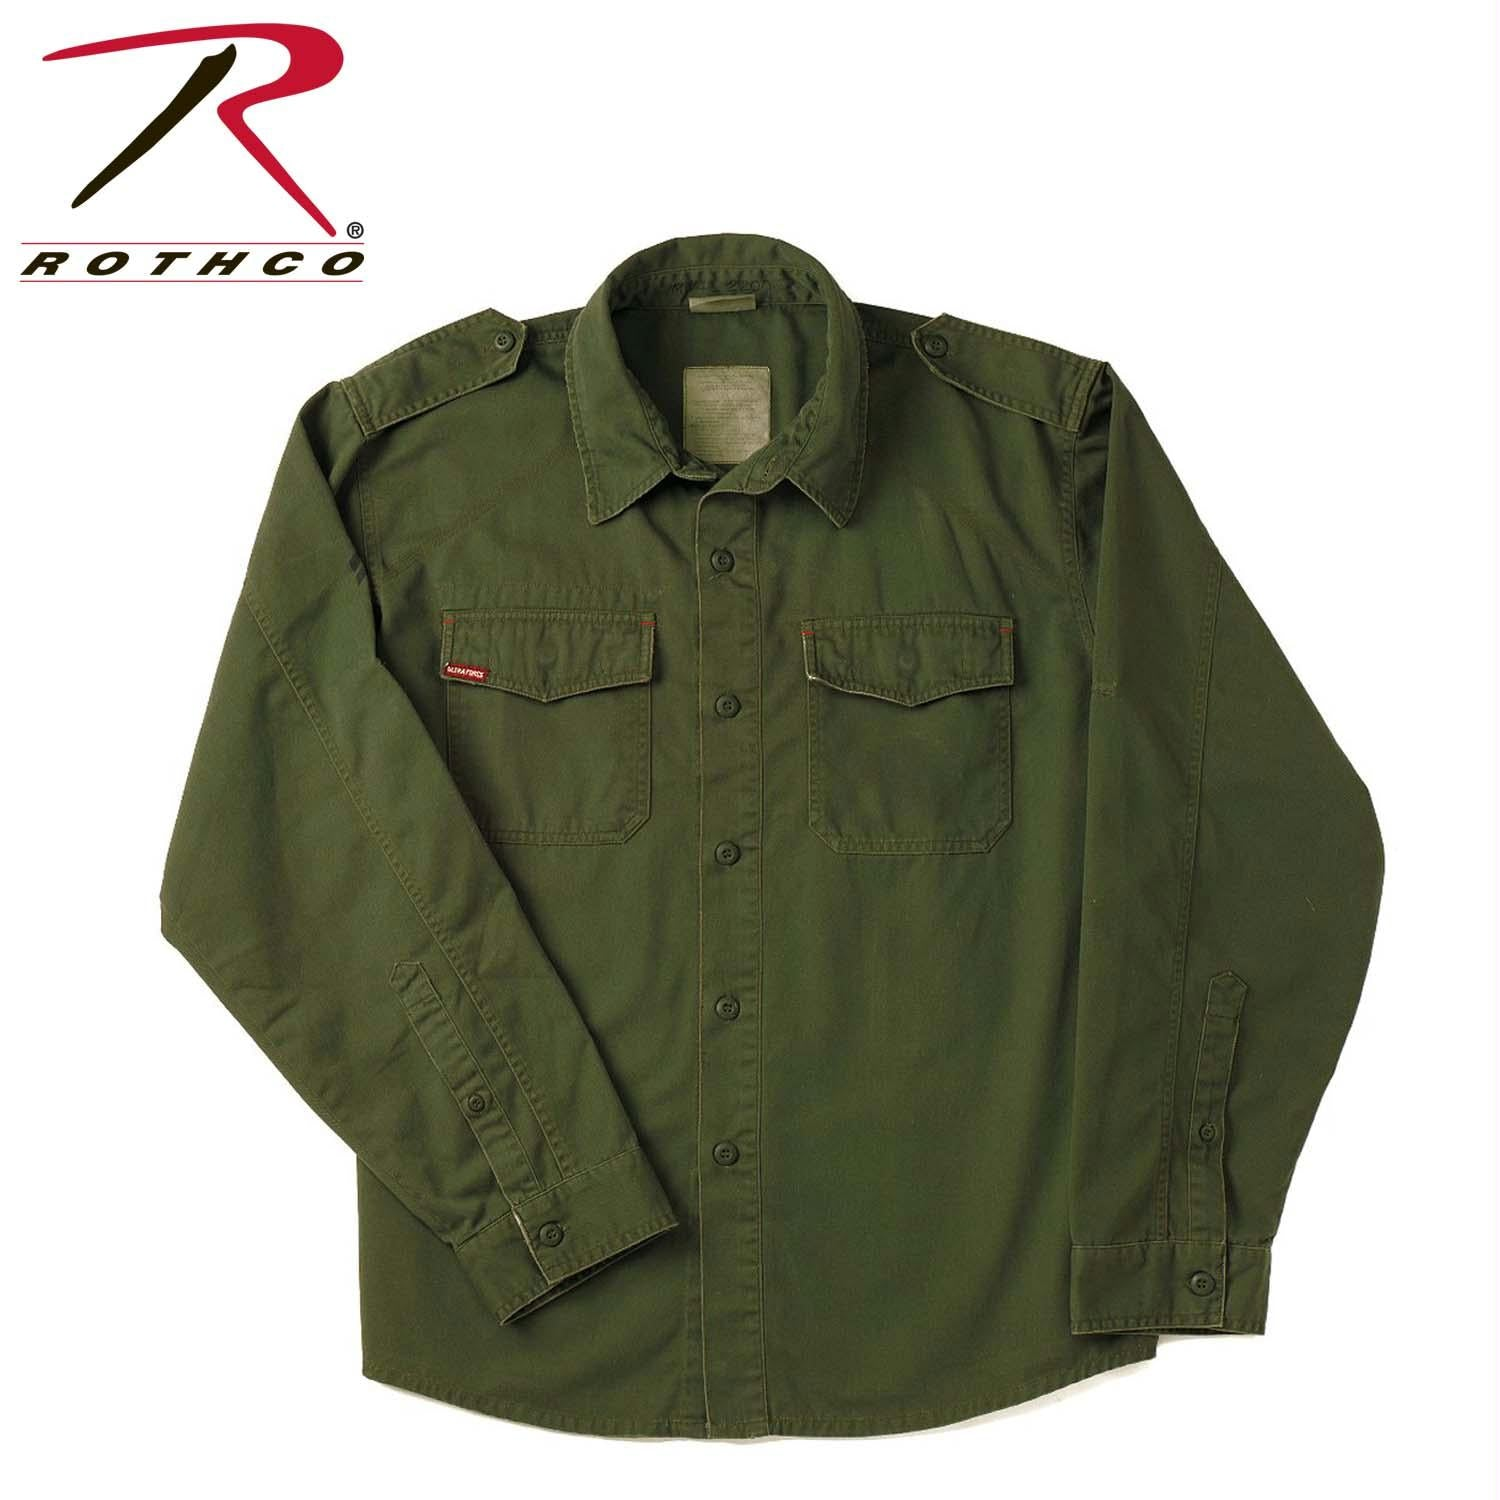 Rothco Vintage Fatigue Shirts - Olive Drab / S